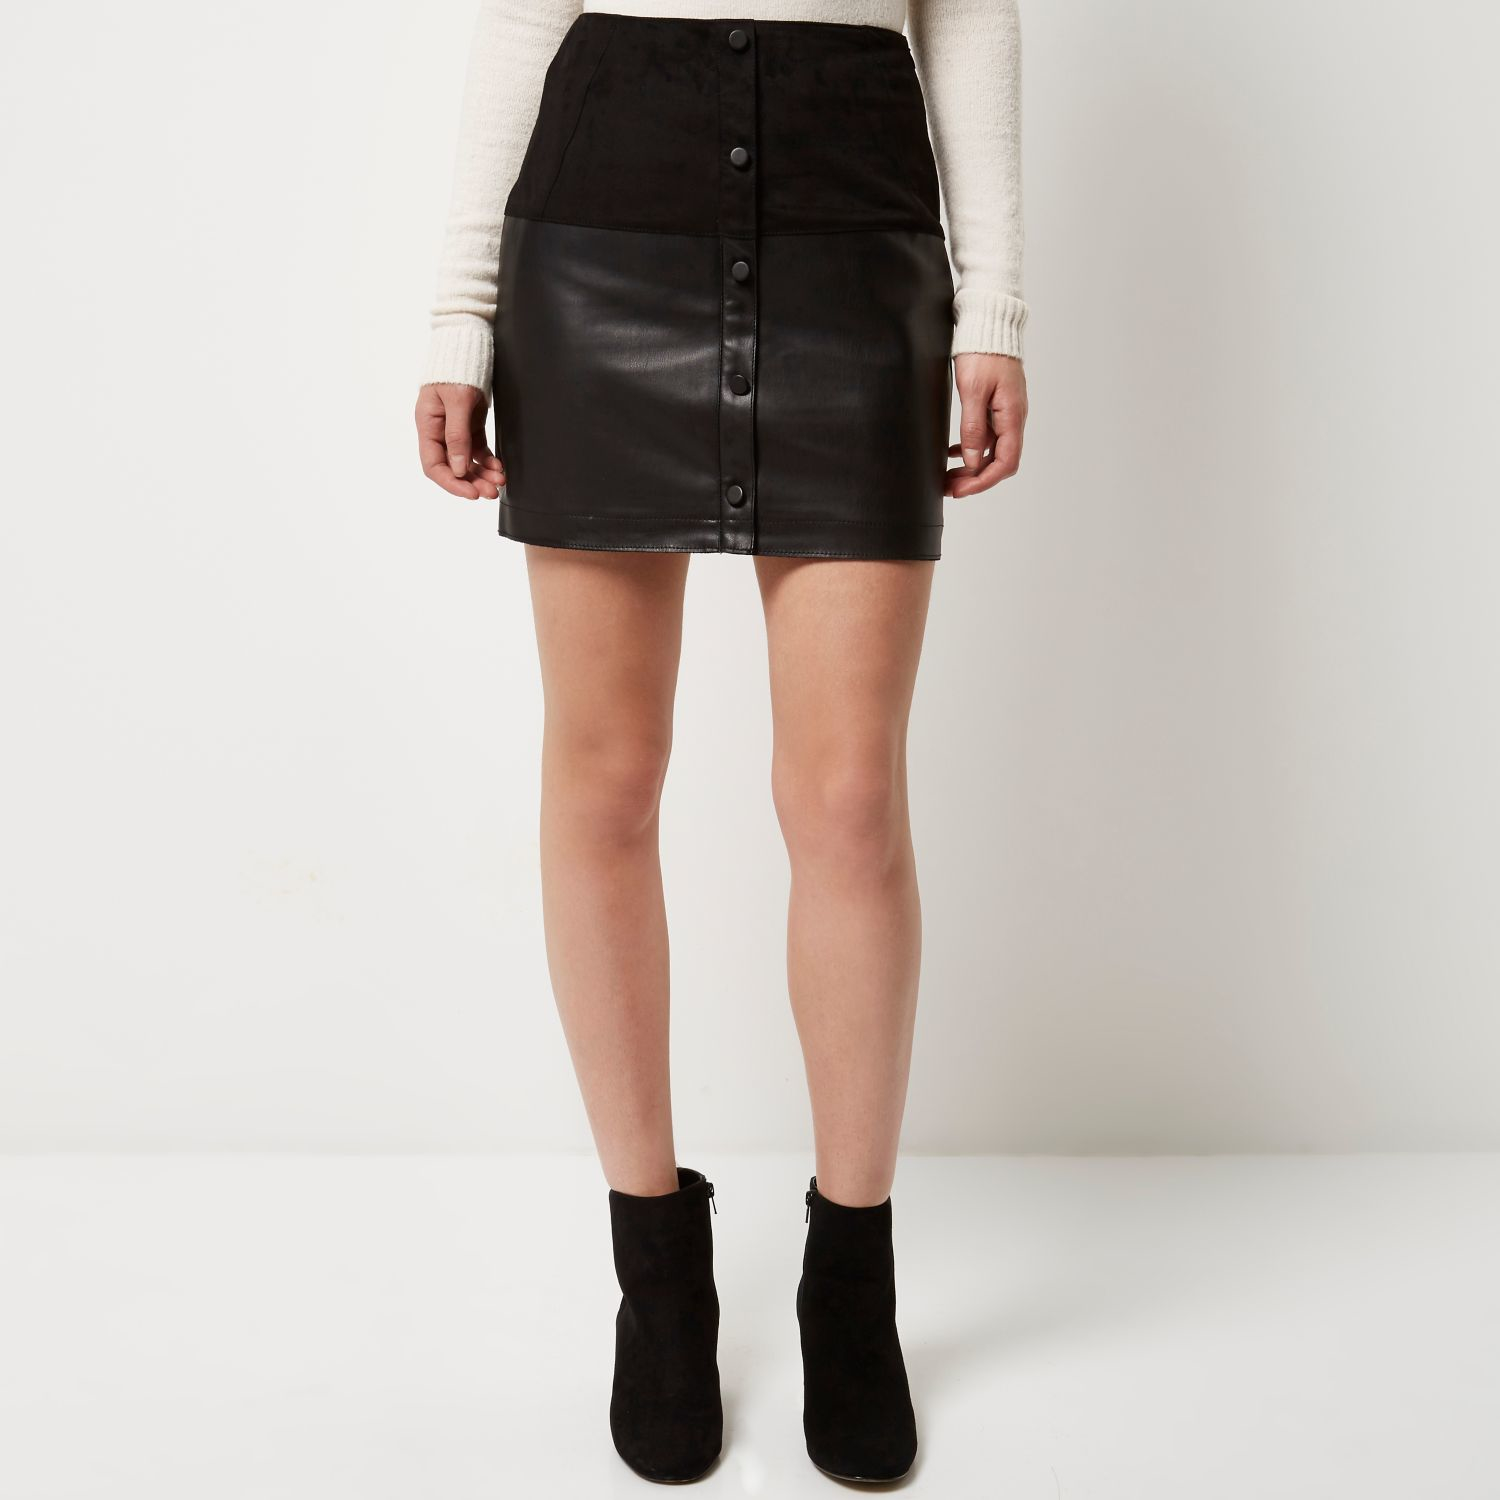 bce5b05ecf River Island Black Faux-suede Button-up Mini Skirt in Black - Lyst